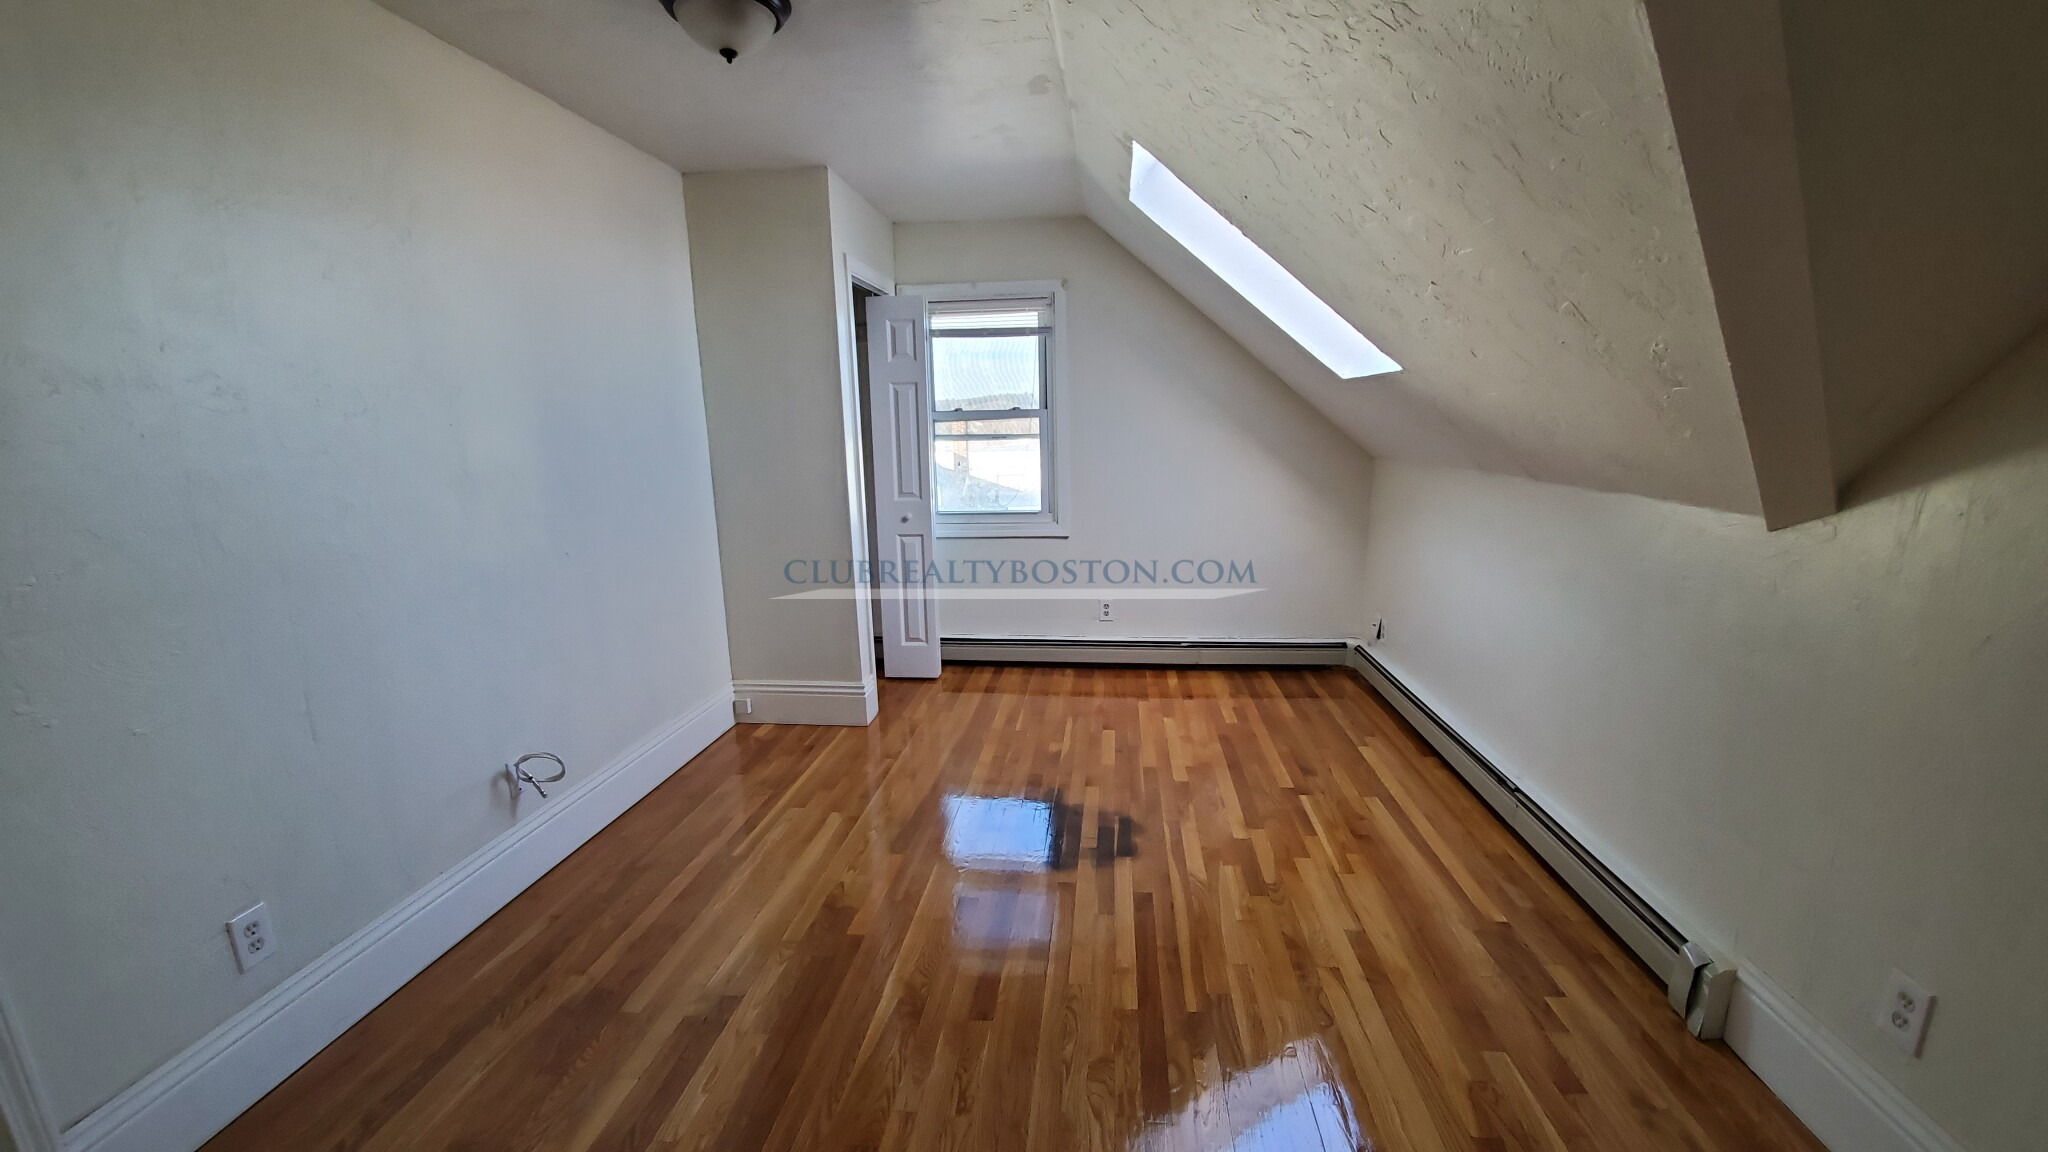 1 Bed, 1 Bath apartment in Waltham for $1,500